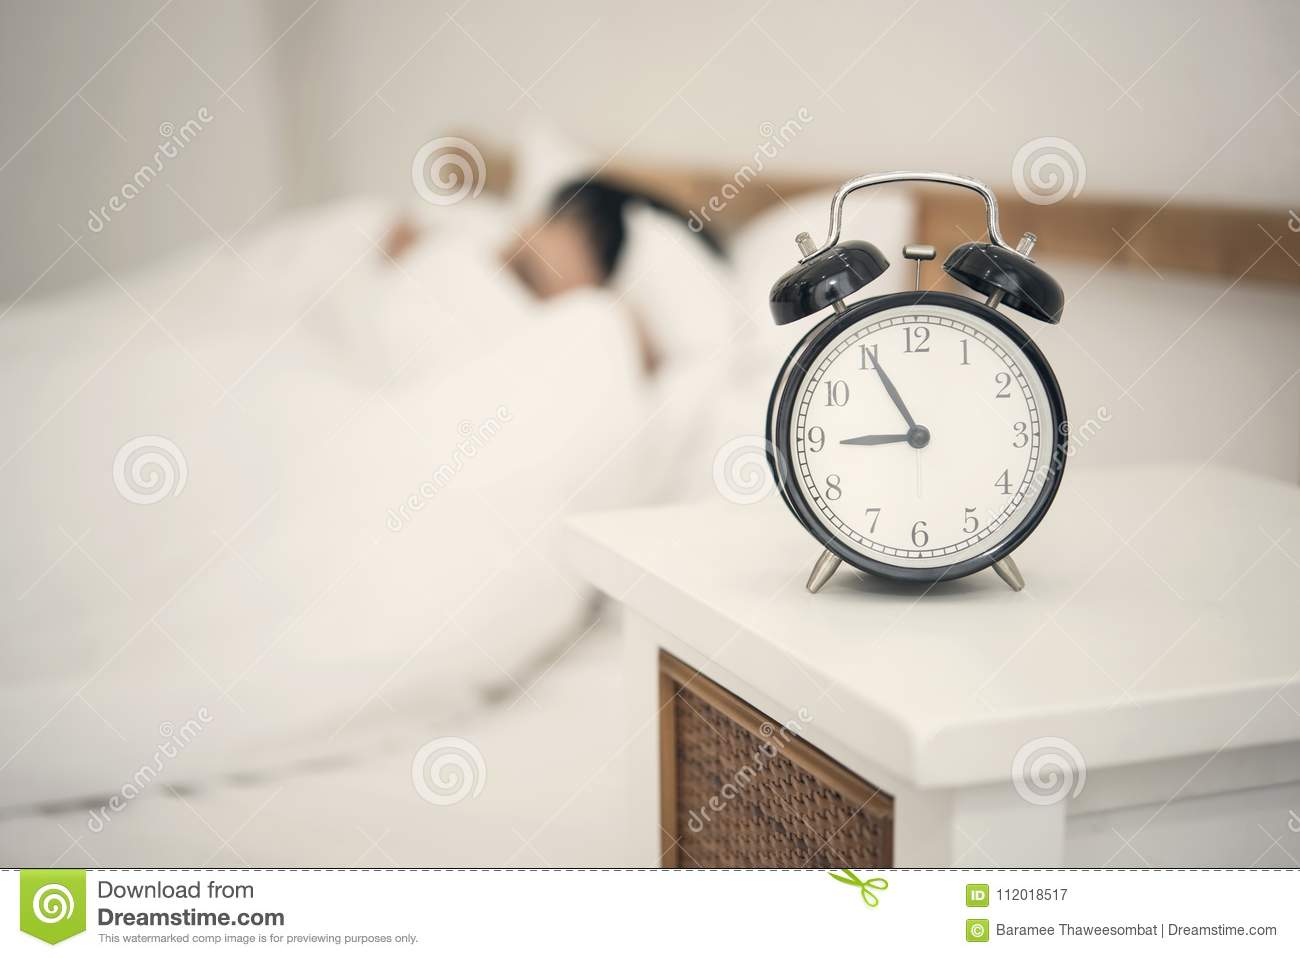 Man Sleeping On Bed In Bedroom And Alarm Clock. Stock Image ...